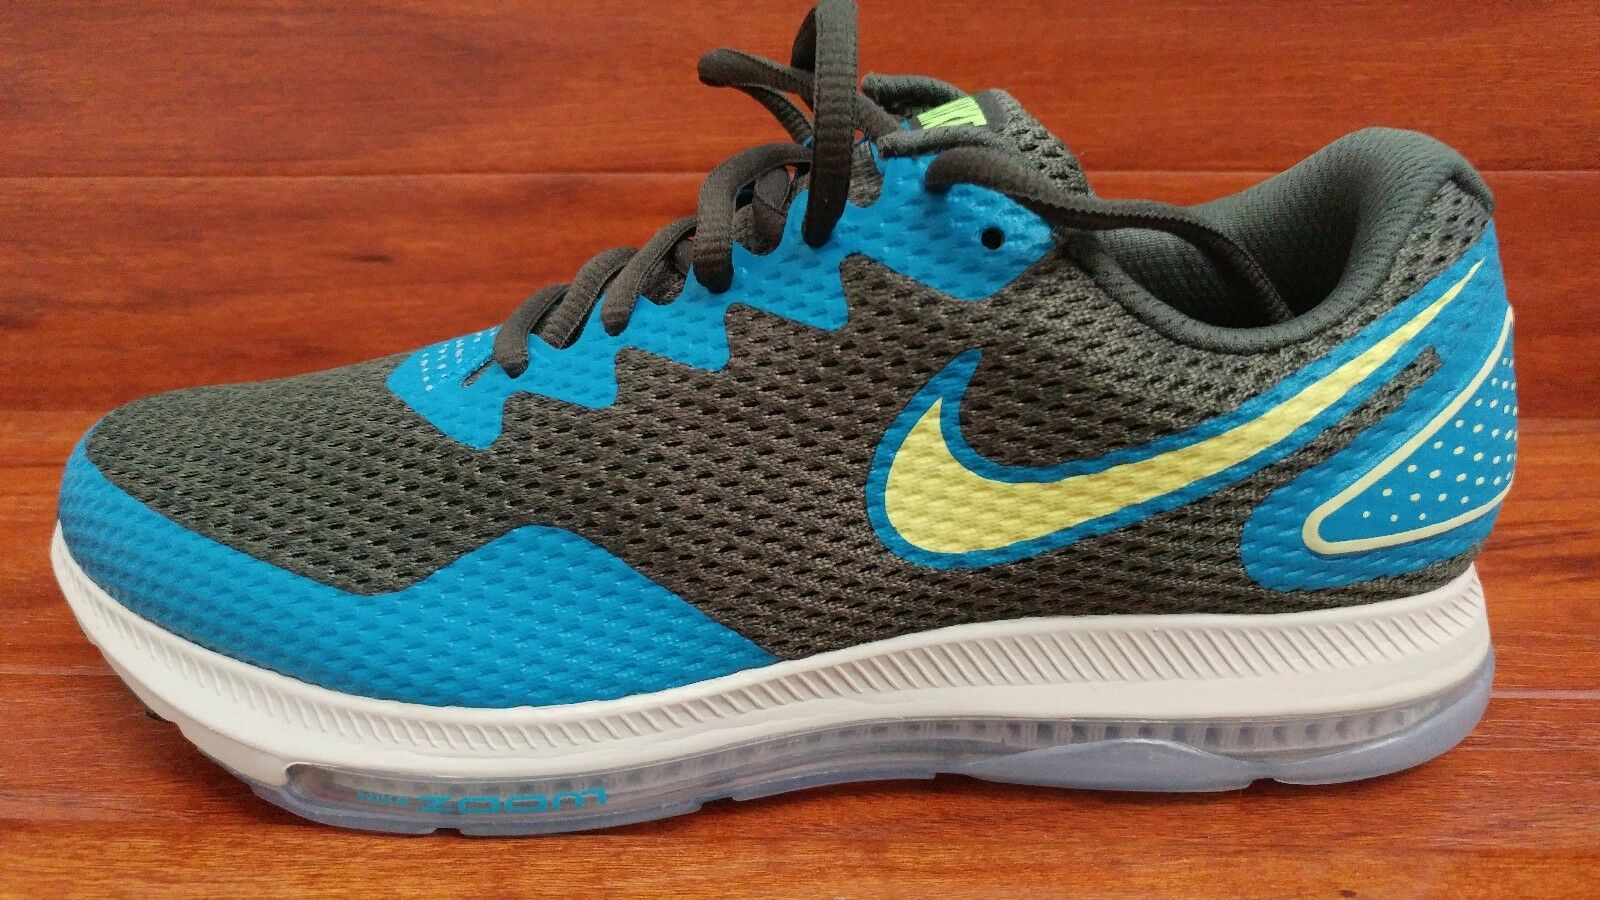 New Men's Nike Zoom All Out Low 2 . Size 9. AJ0035 301.